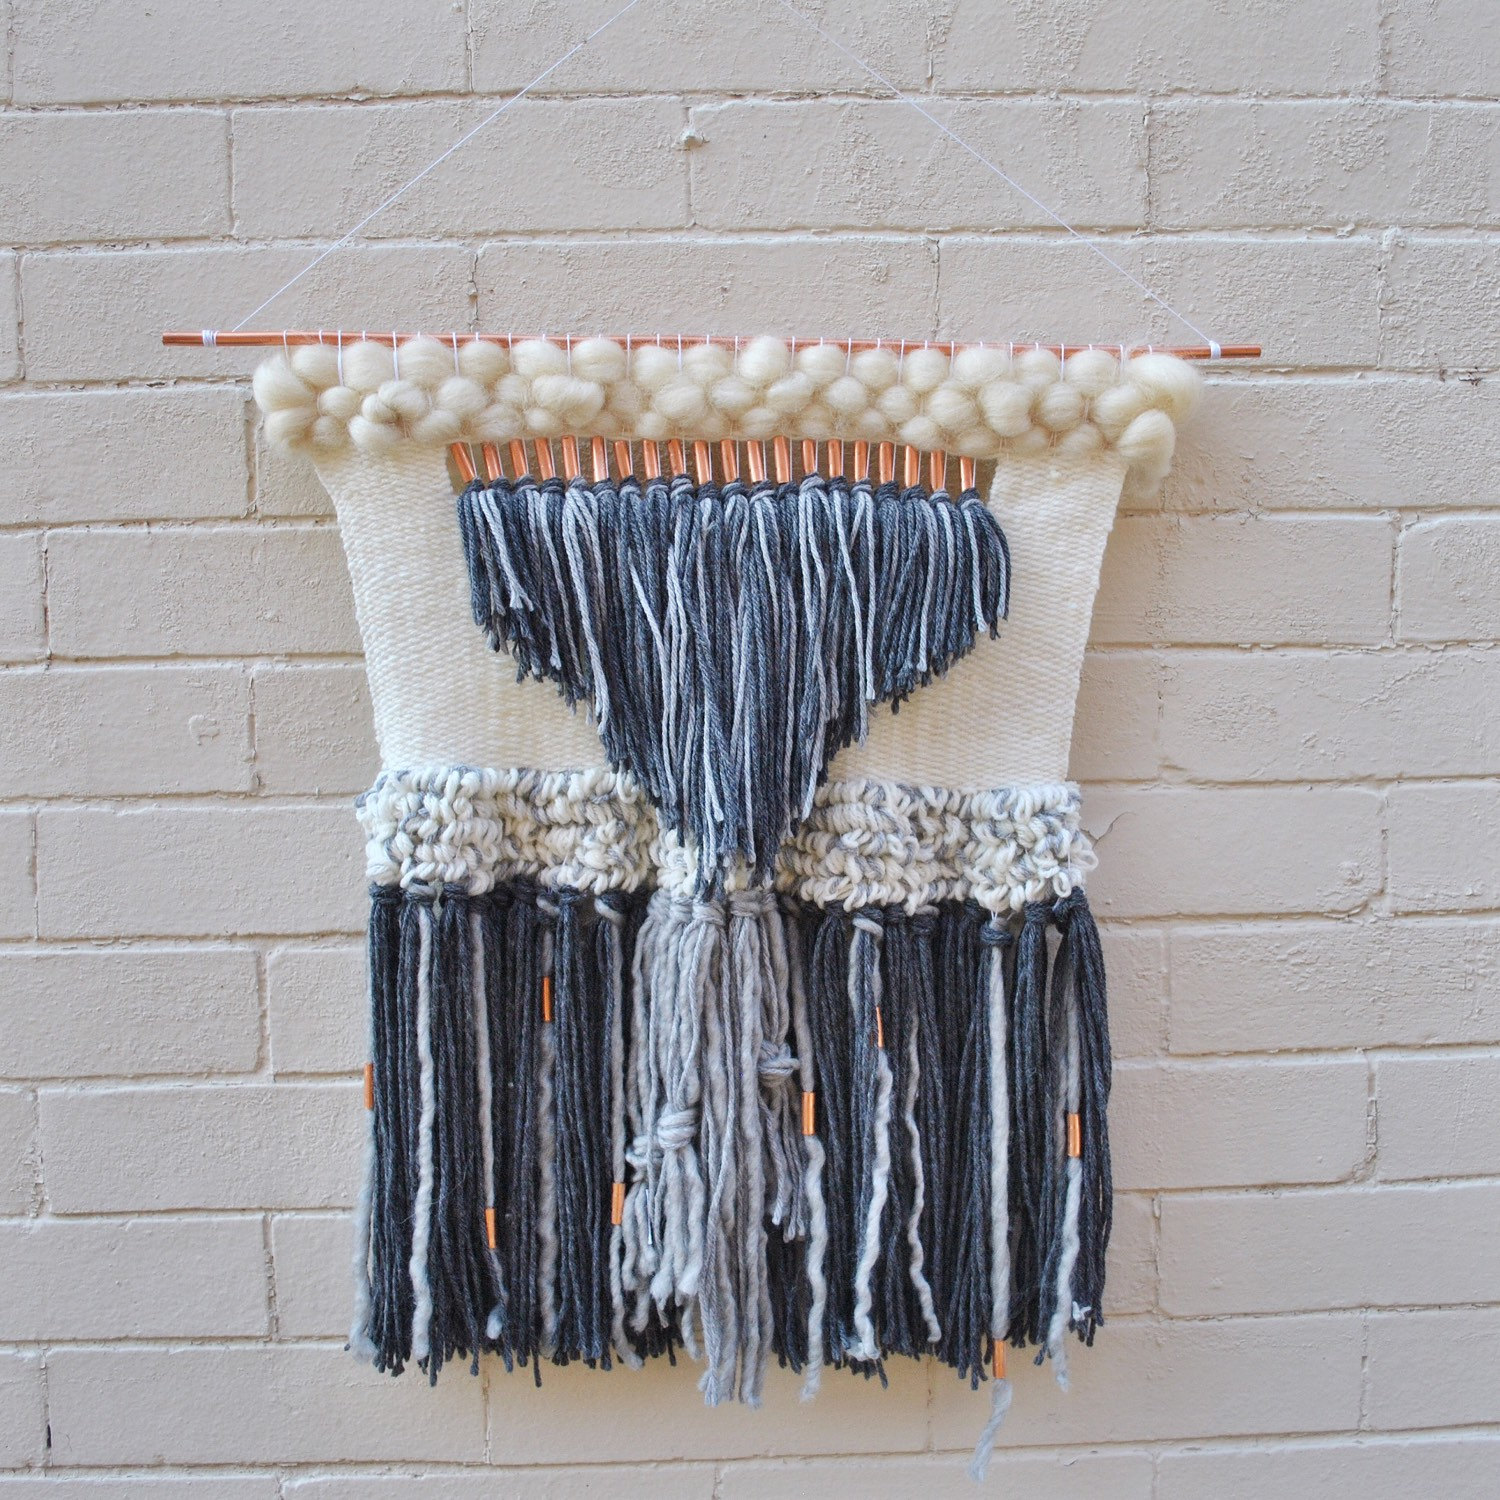 wall-hanging-textile12